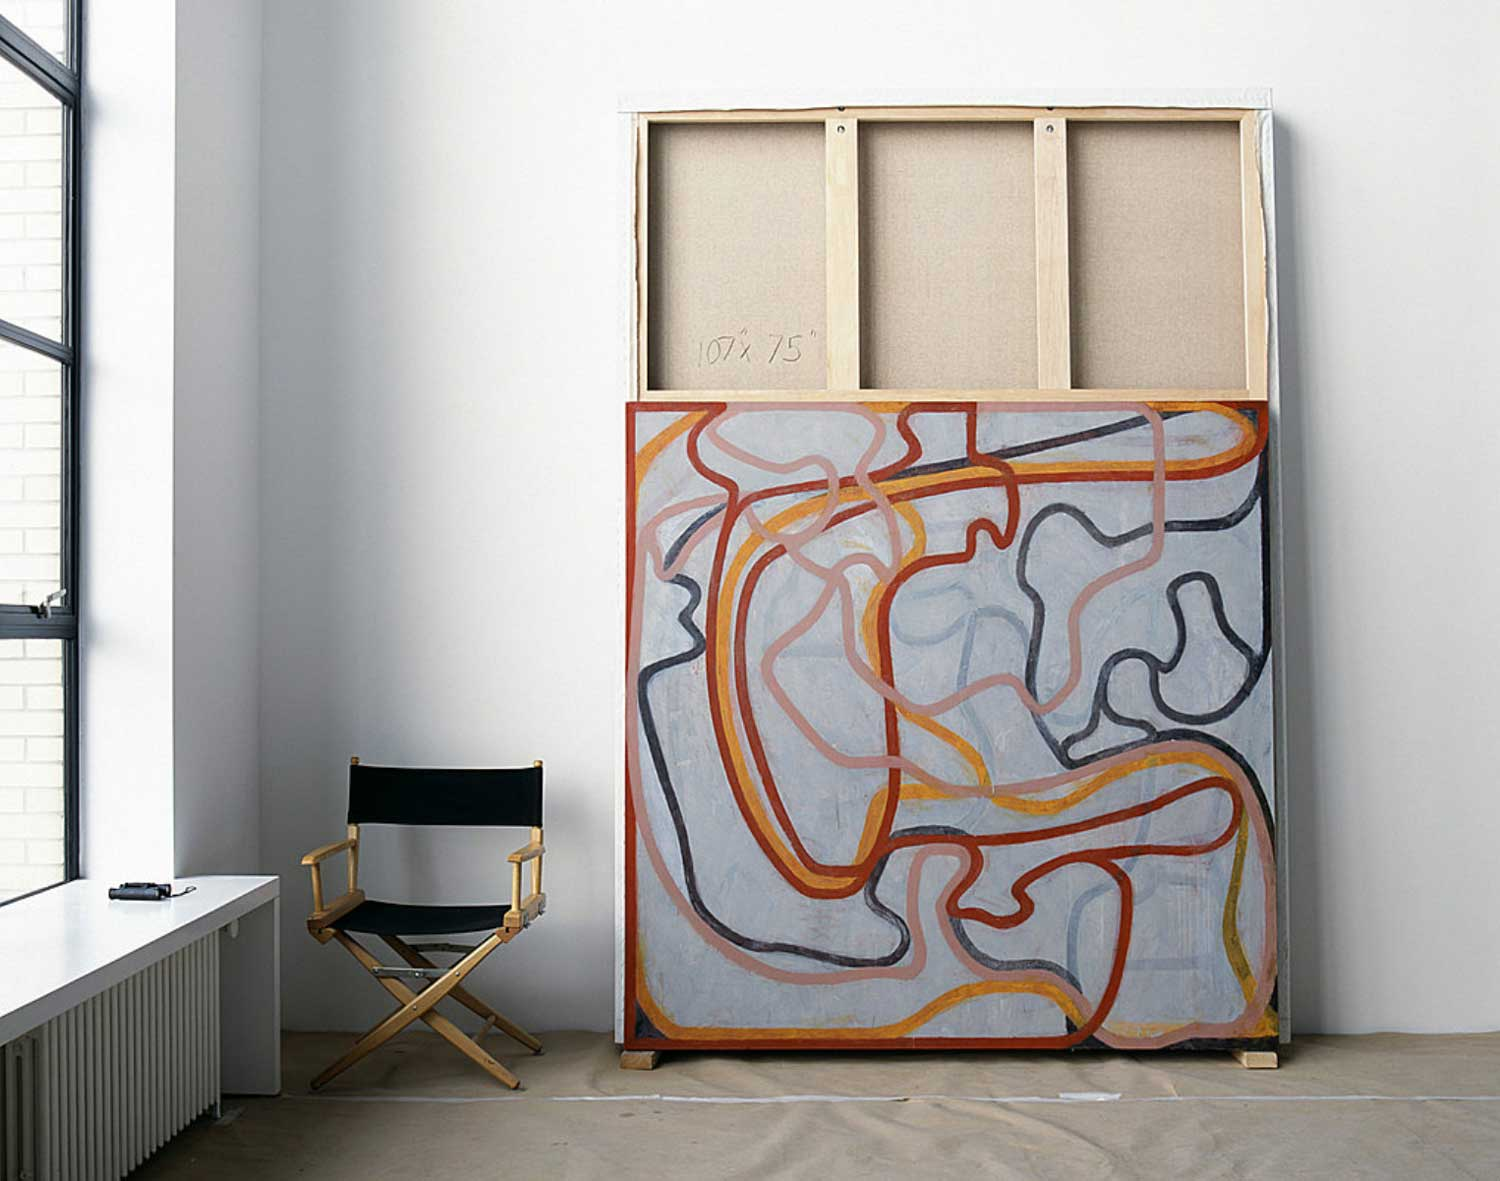 Brice Marden Studio | Yellowtrace